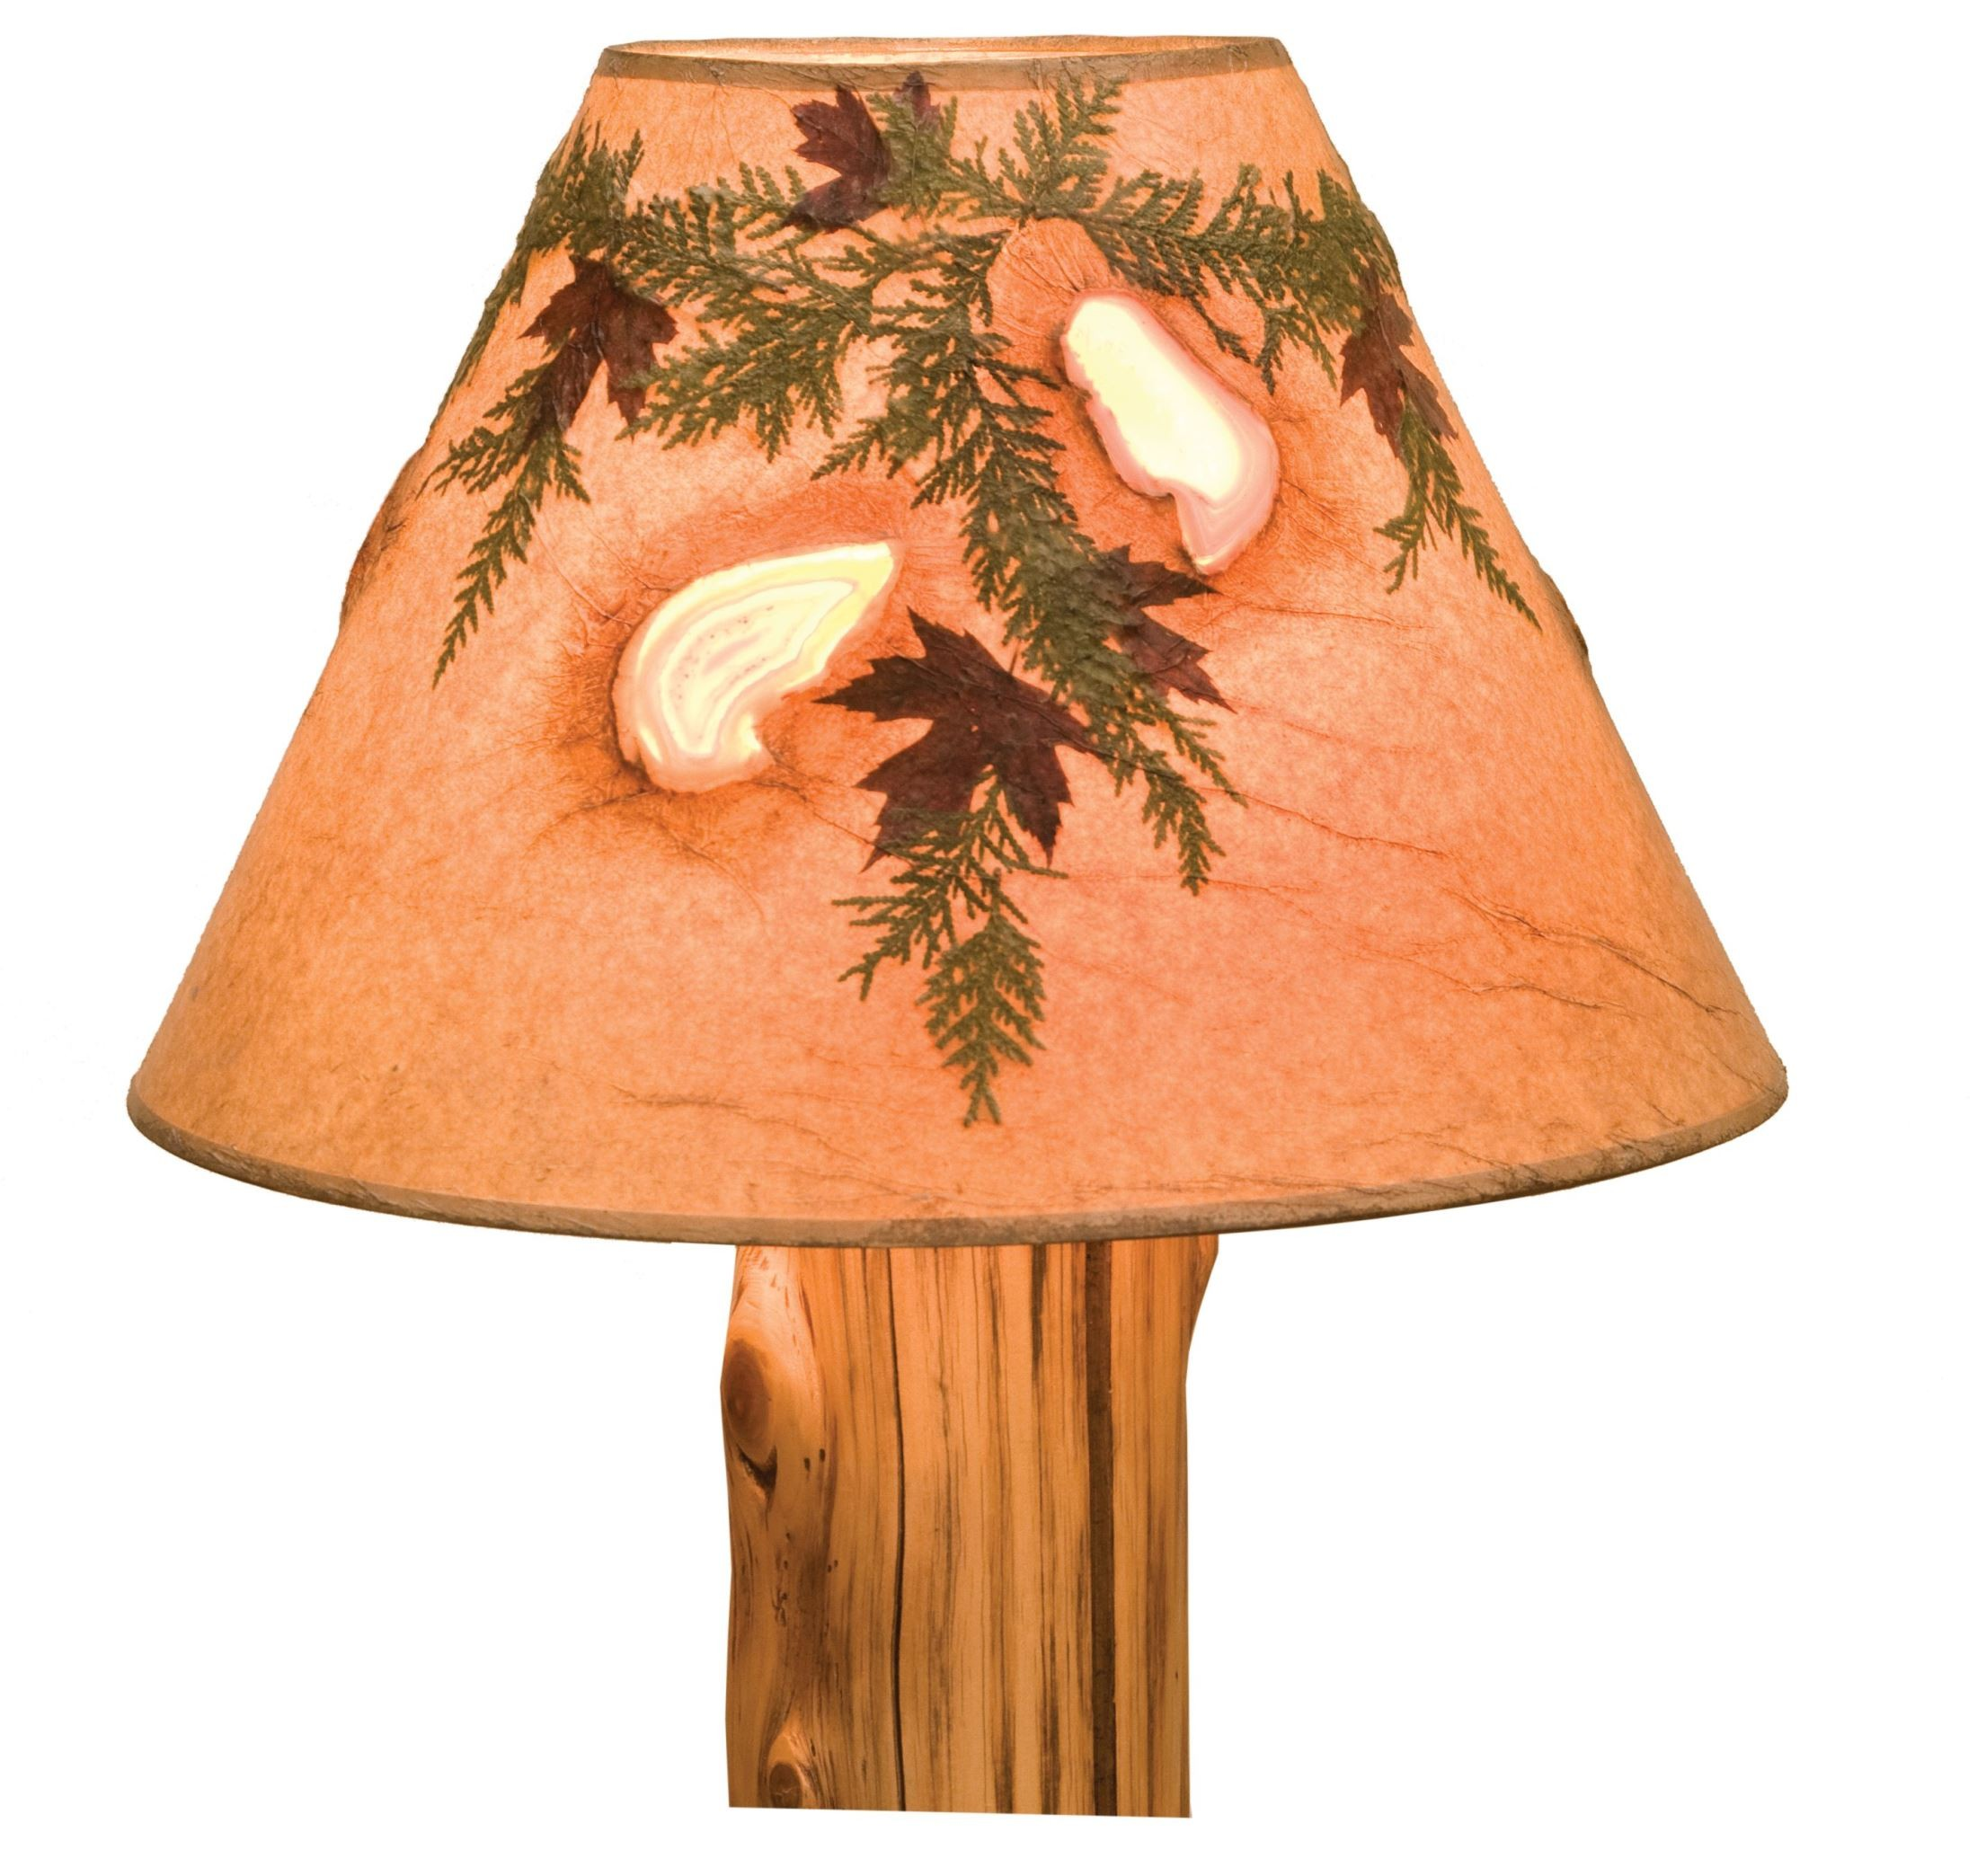 agates and foliage extra large lamp shade from fireside lodge 19247. Black Bedroom Furniture Sets. Home Design Ideas